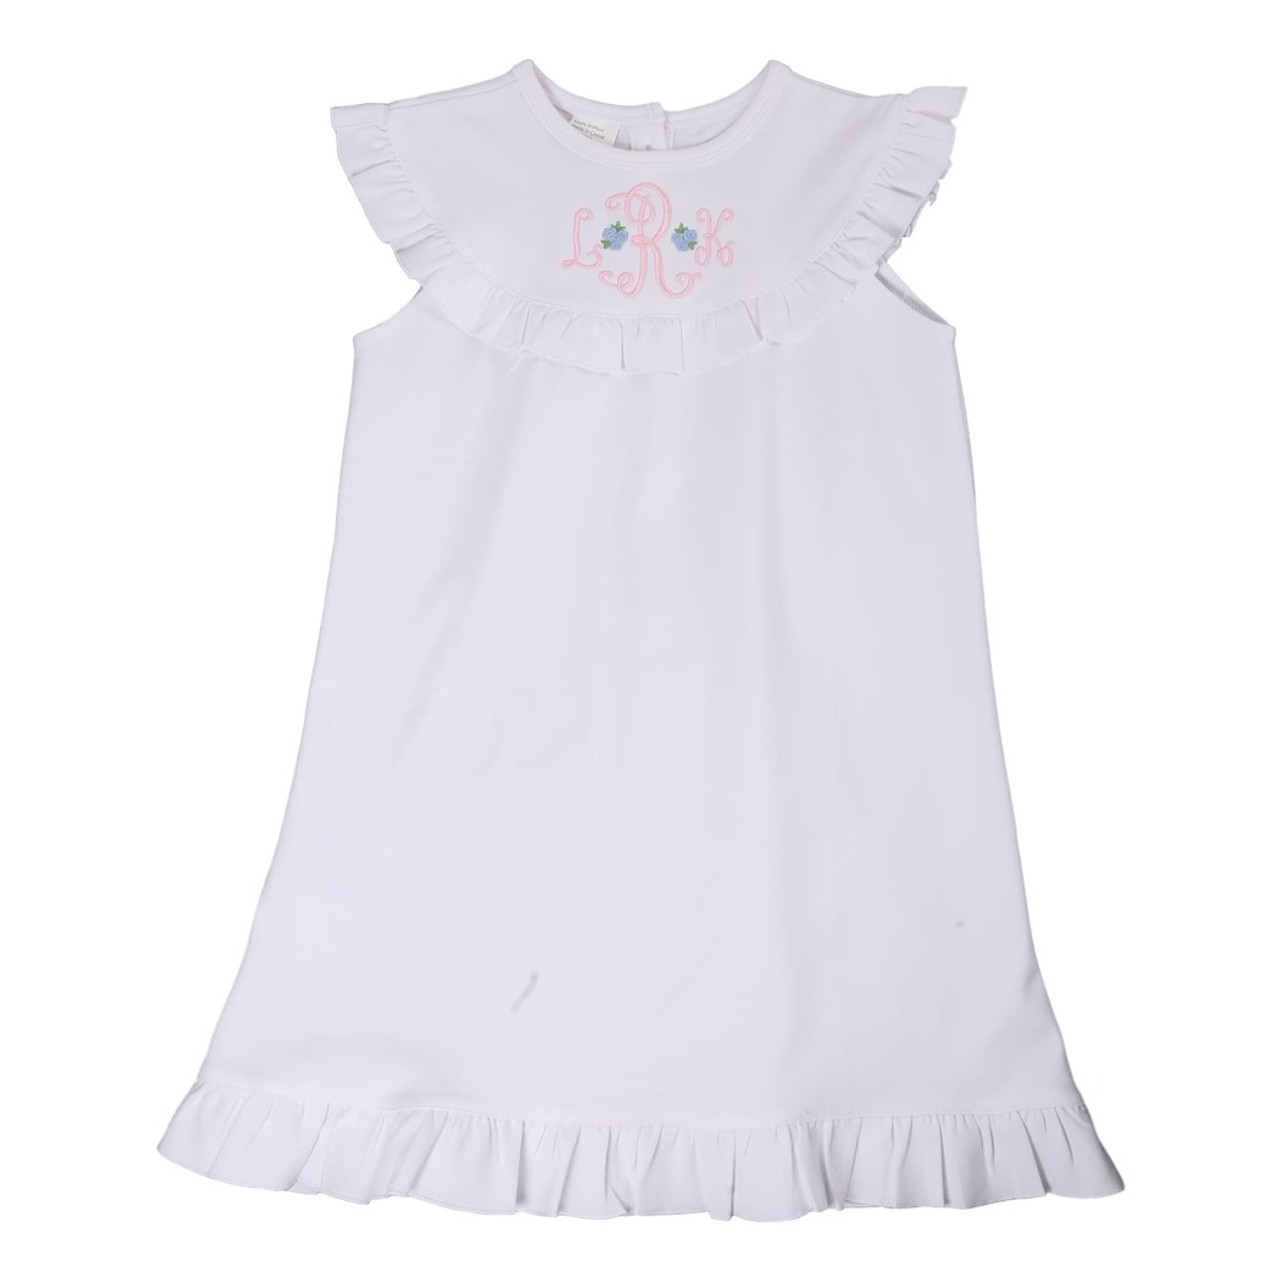 White Knit Ruffle Nightgown - Smocked Threads by Cecil and Lou